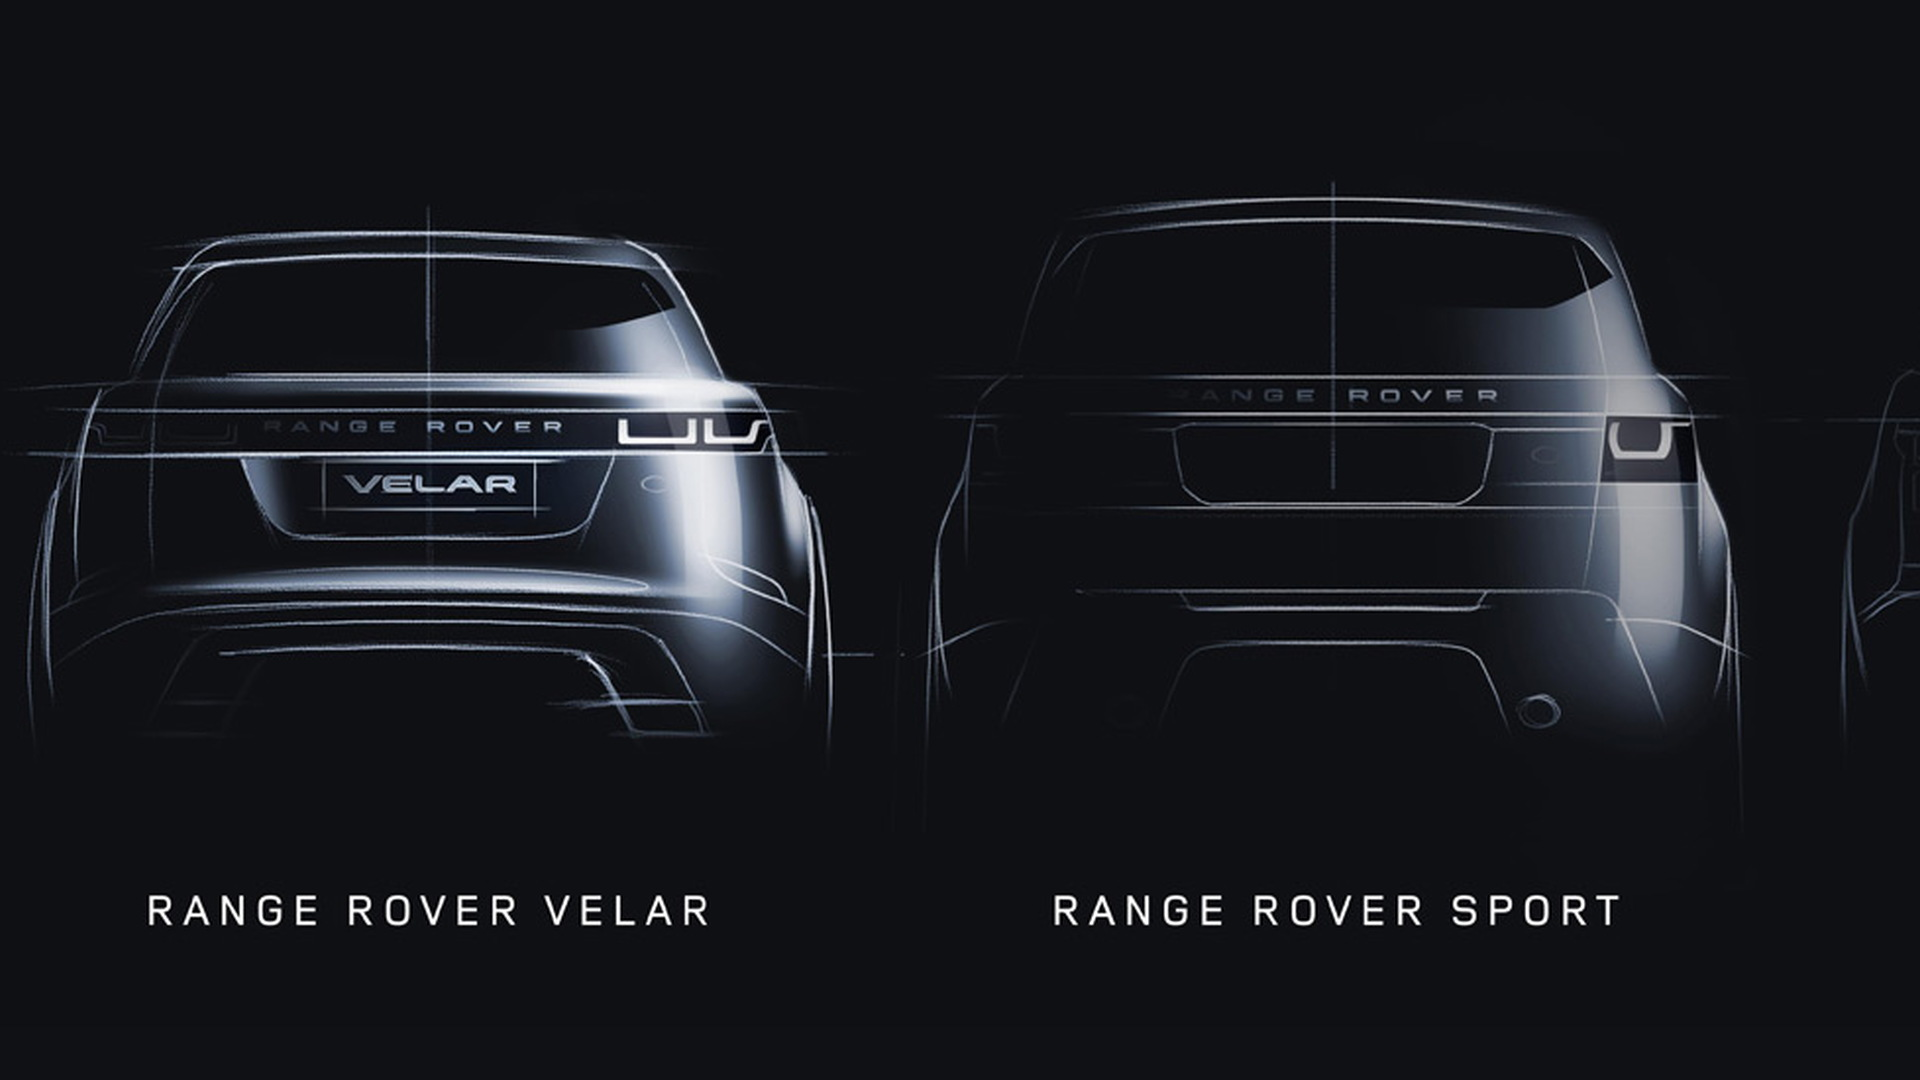 Expanded Land Rover Range Rover family